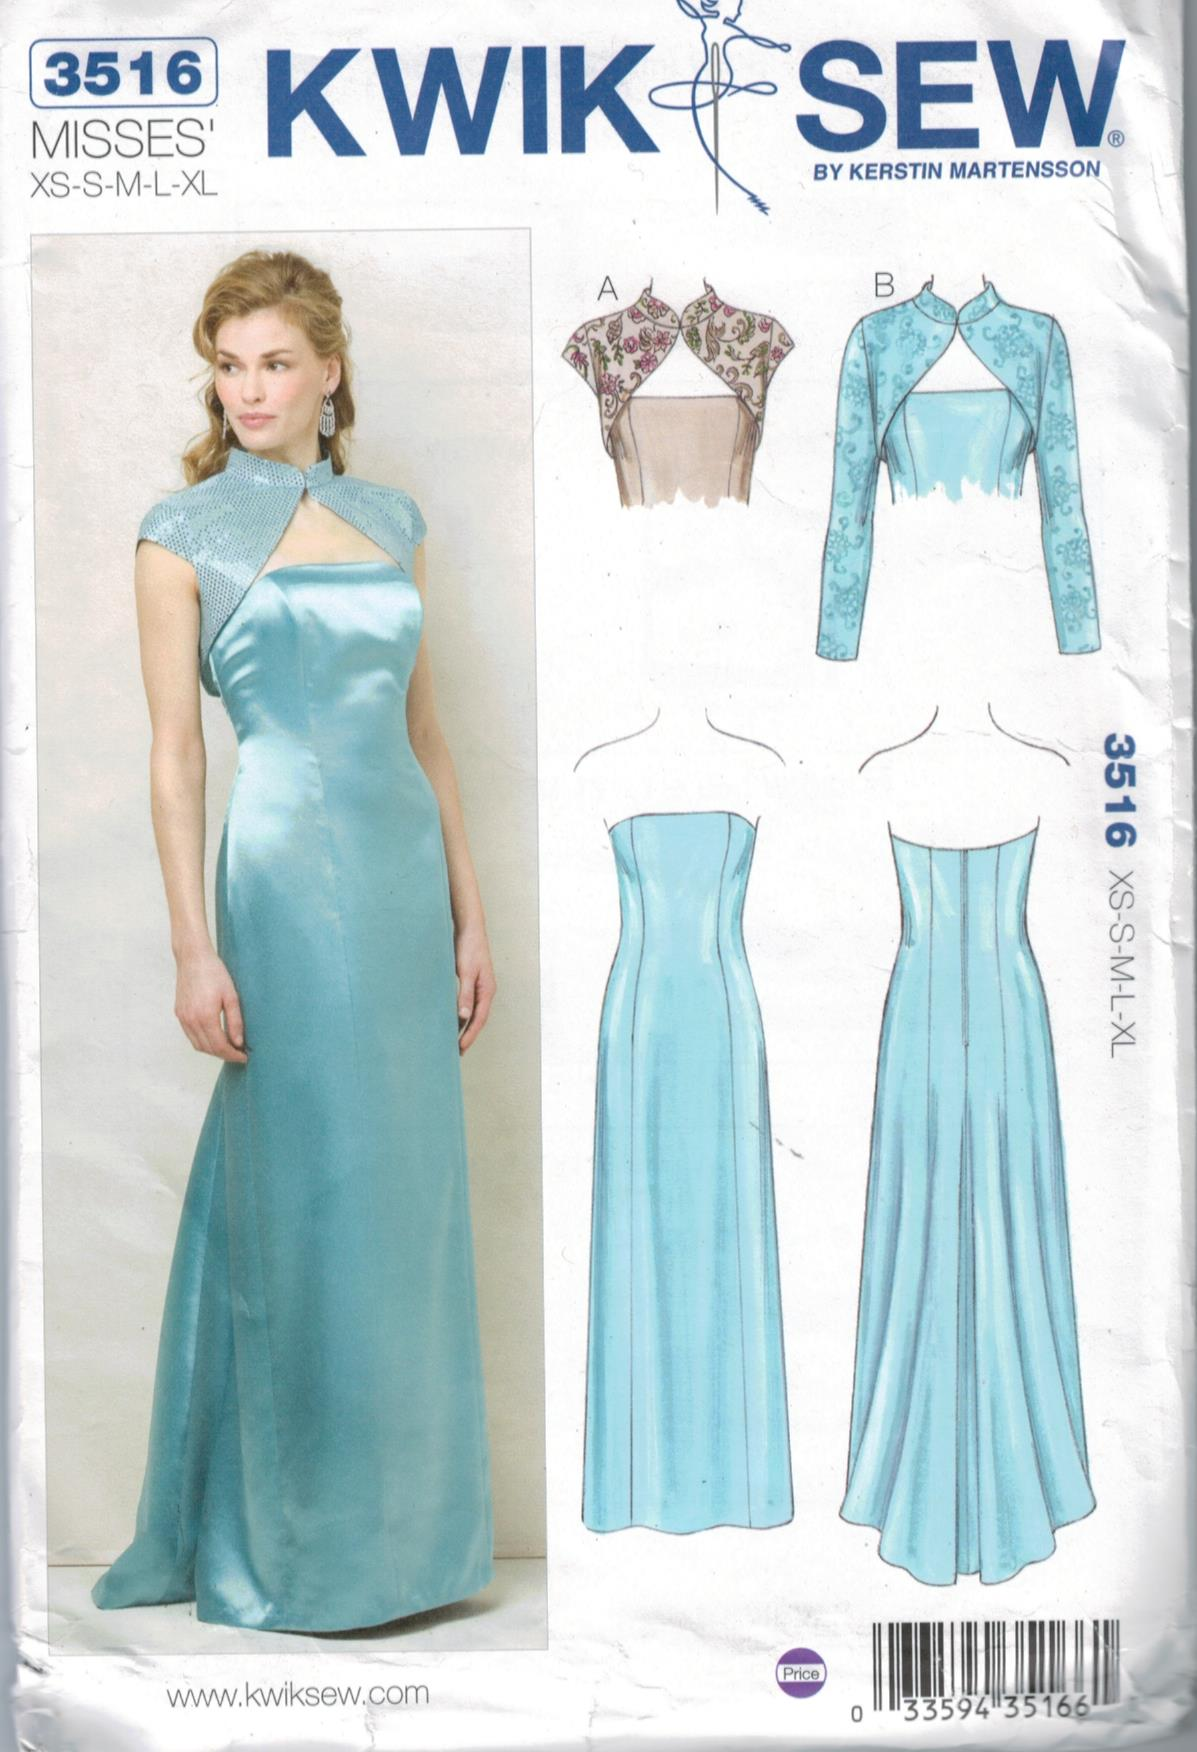 kwik sew pattern 3516 misses formal strapless evening gown